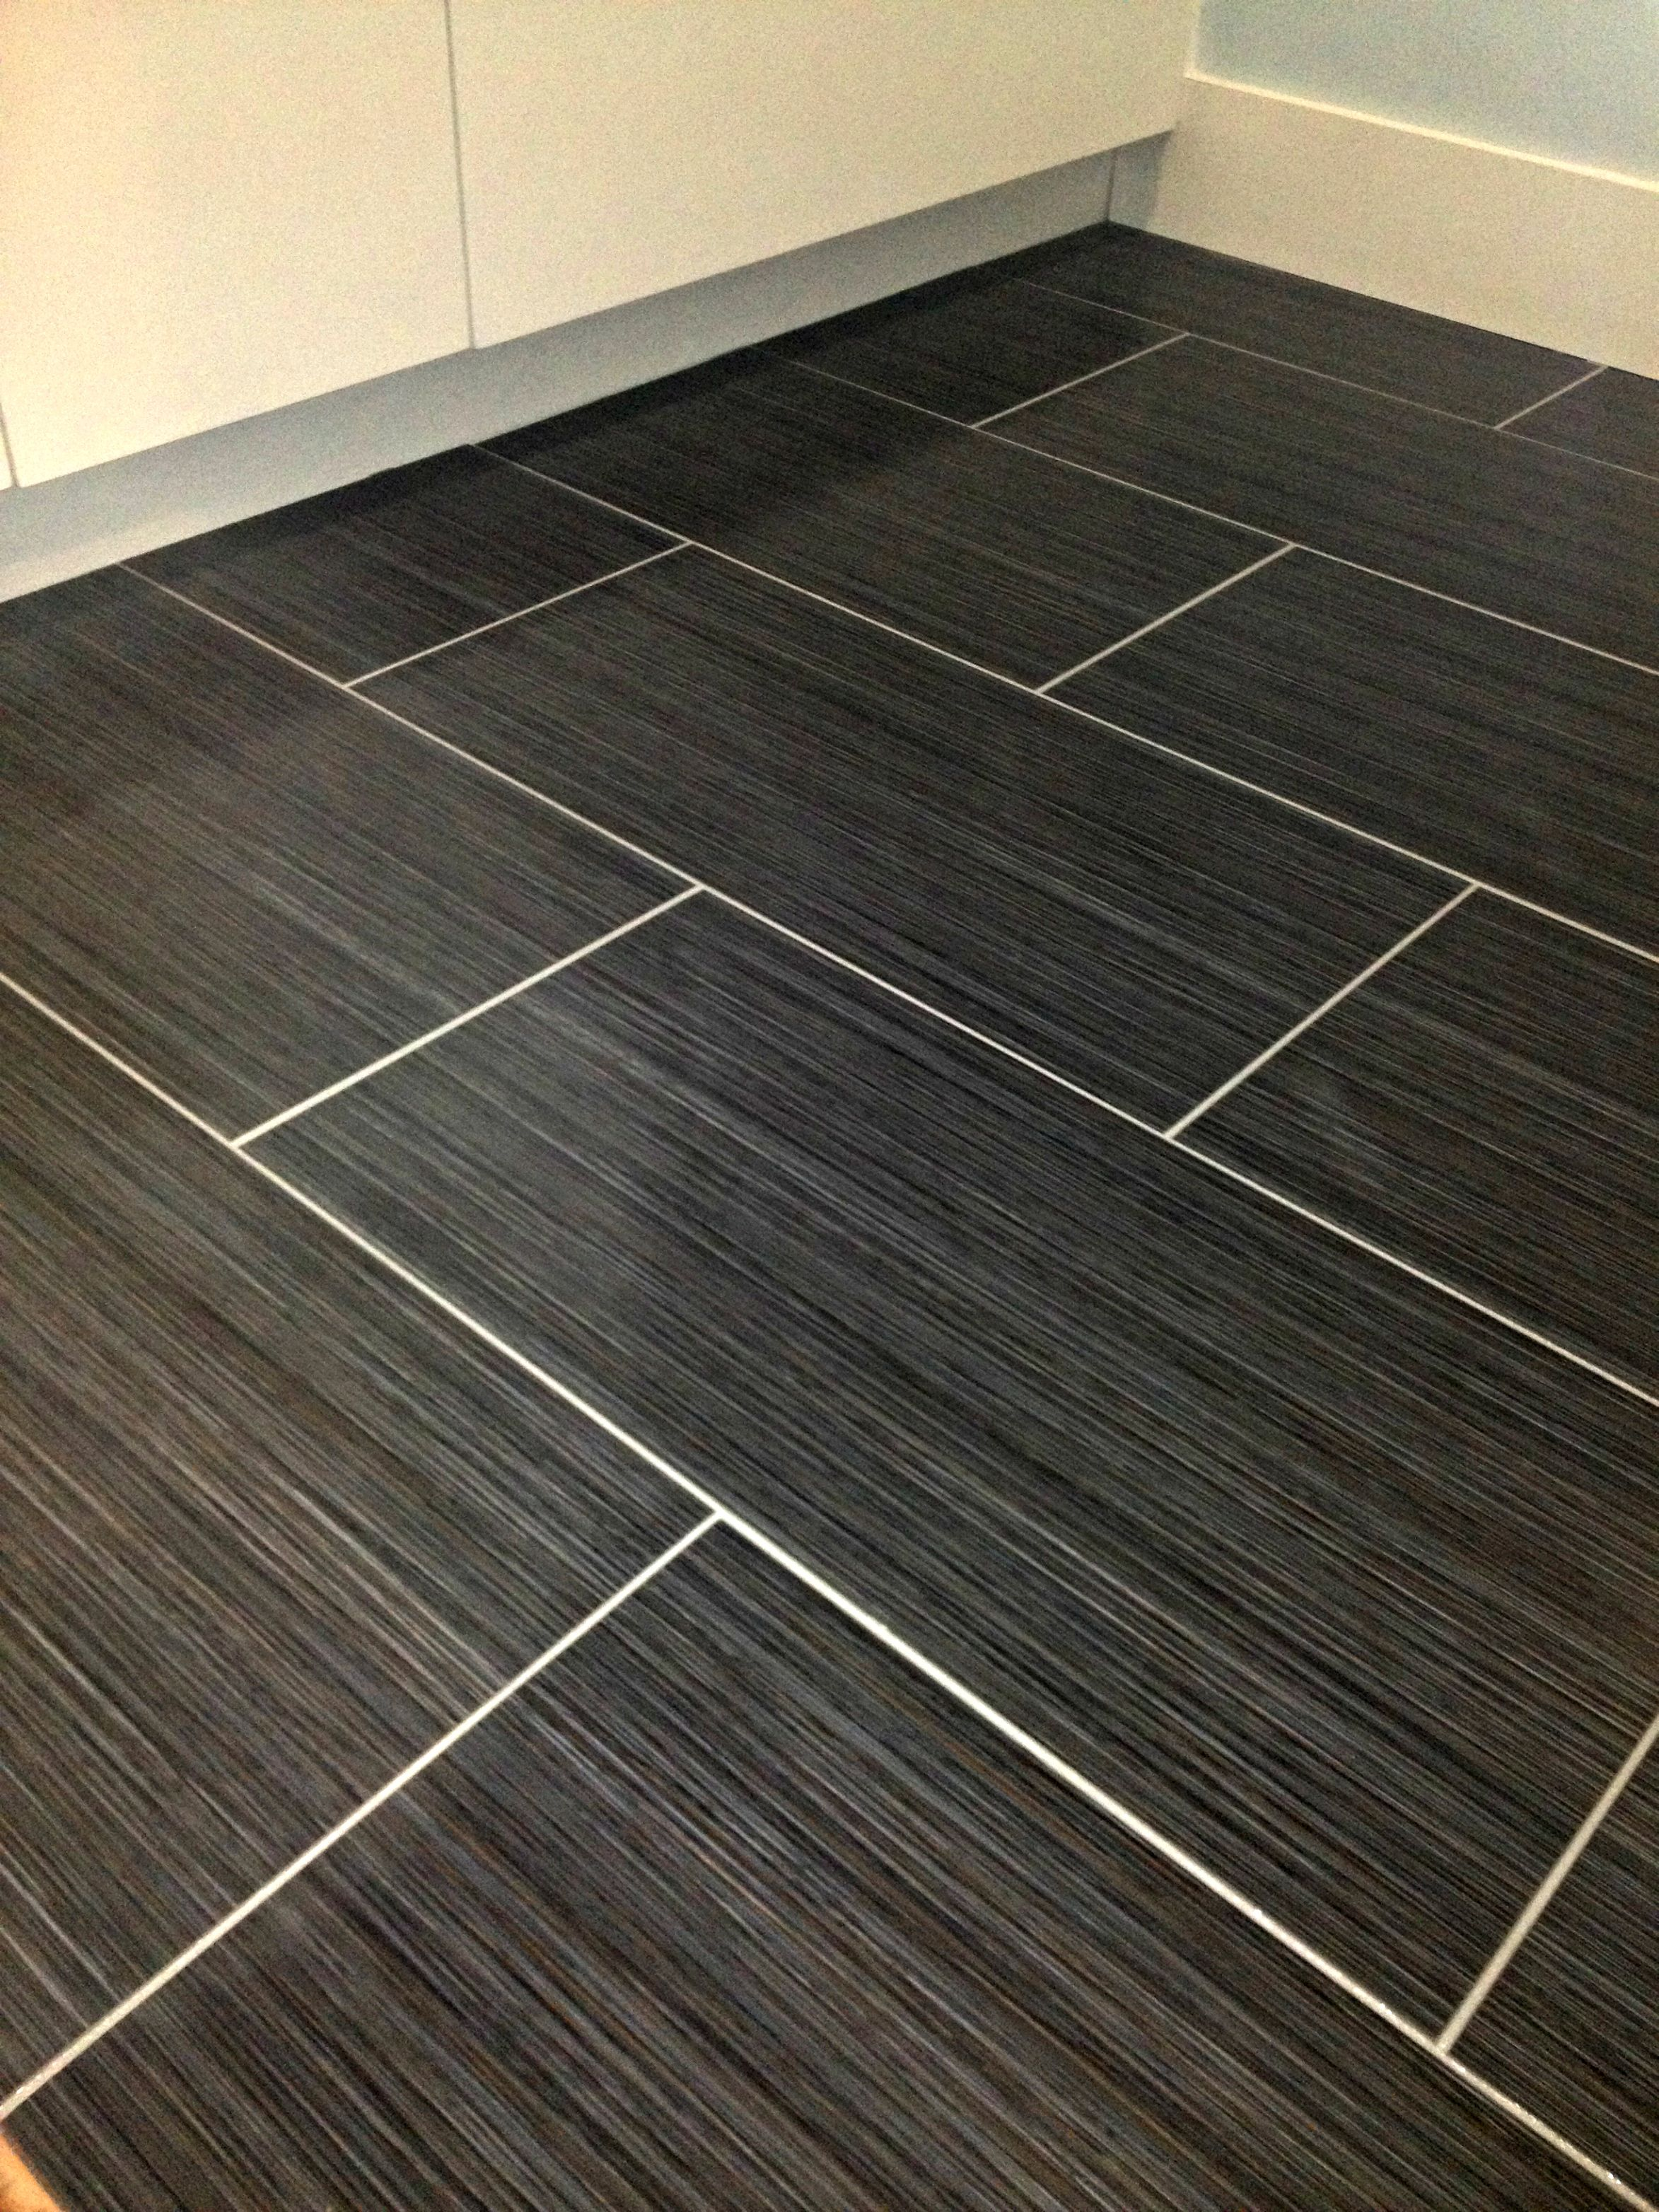 Dark Tile Flooring Pleasing Floor With Dark Tile And Light Grout Our Work  Tile Decorating Design